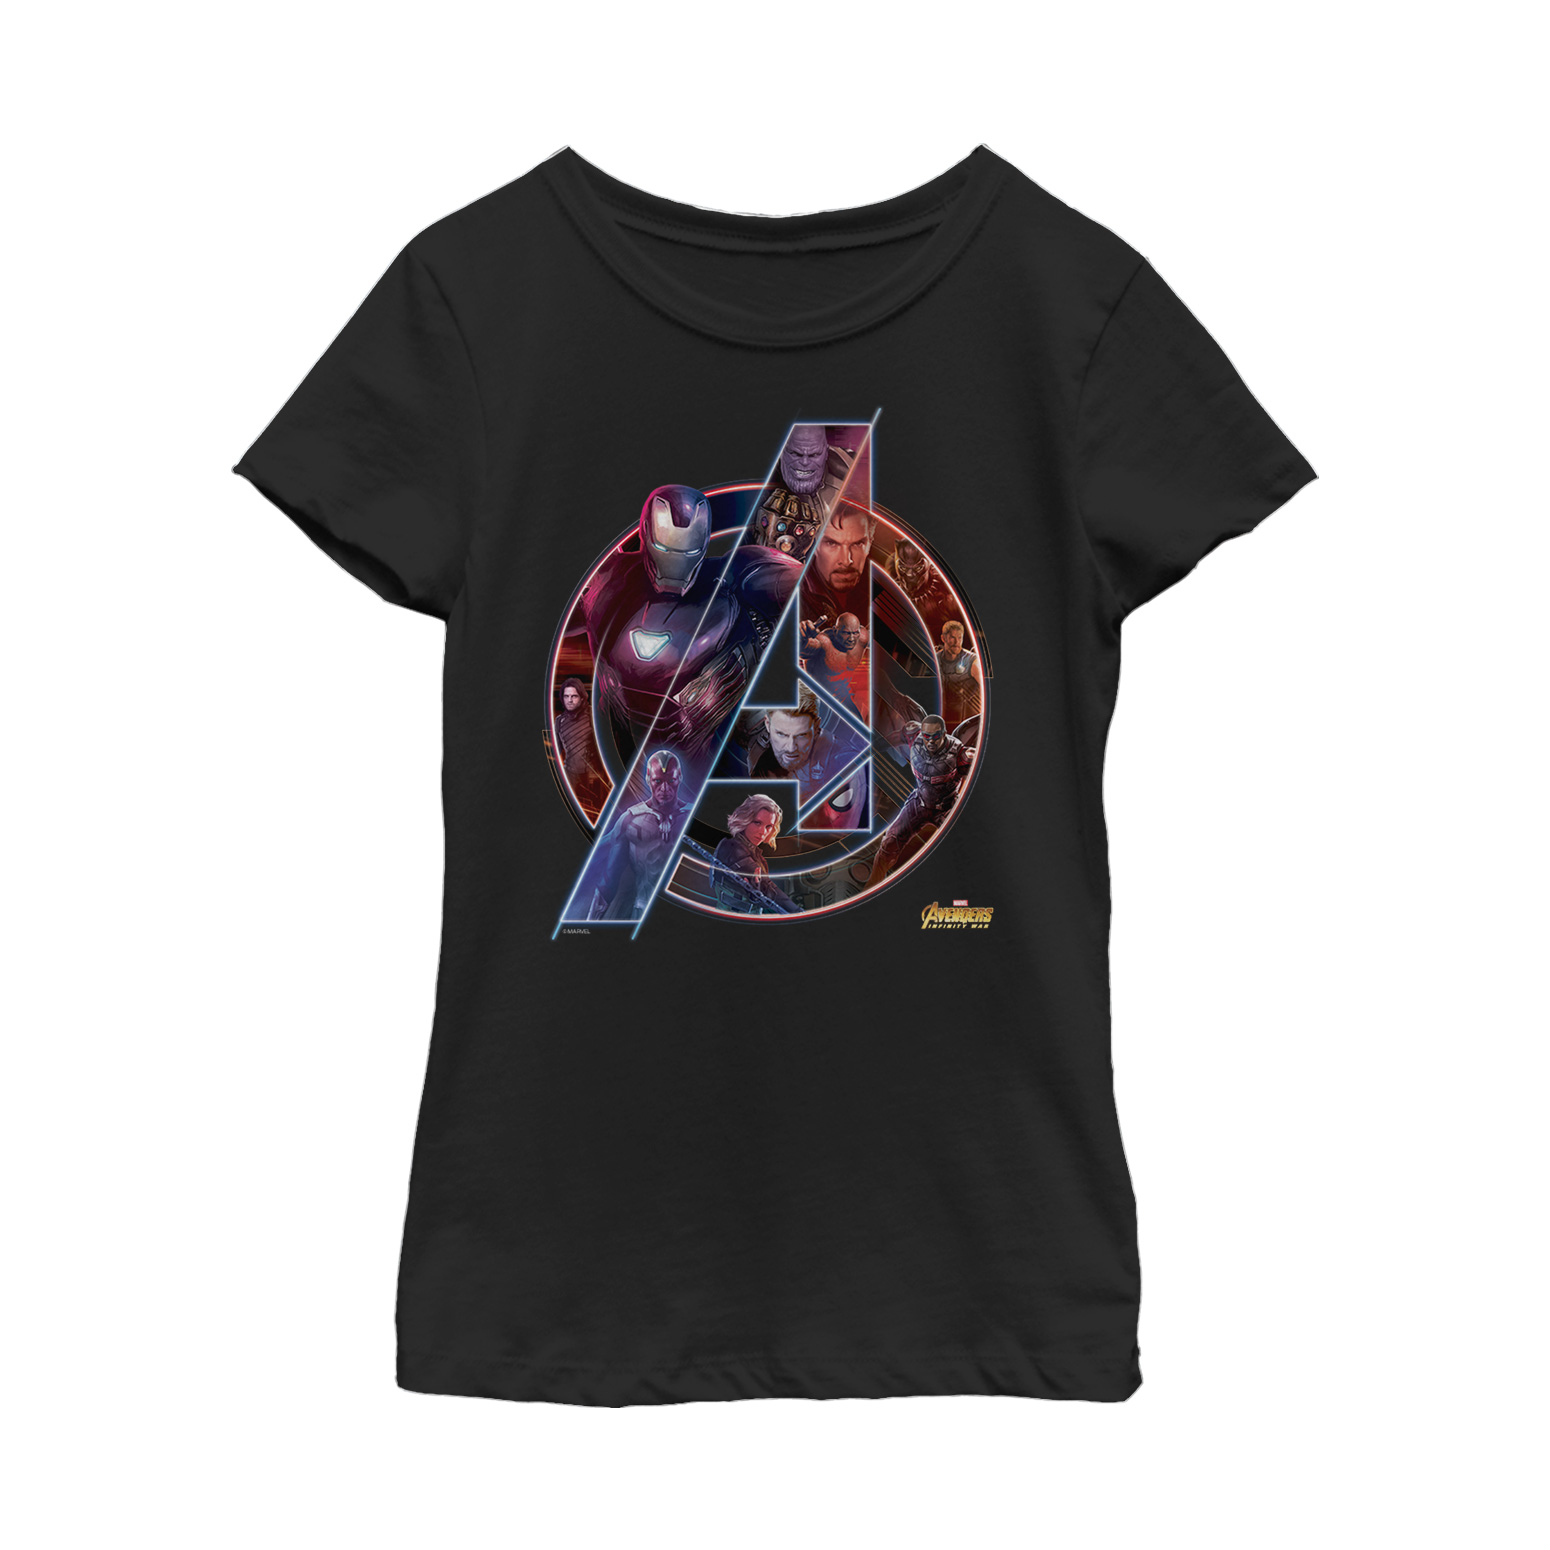 Marvel Girl Spiderman T-Shirt With Shoulder Strap Skirt